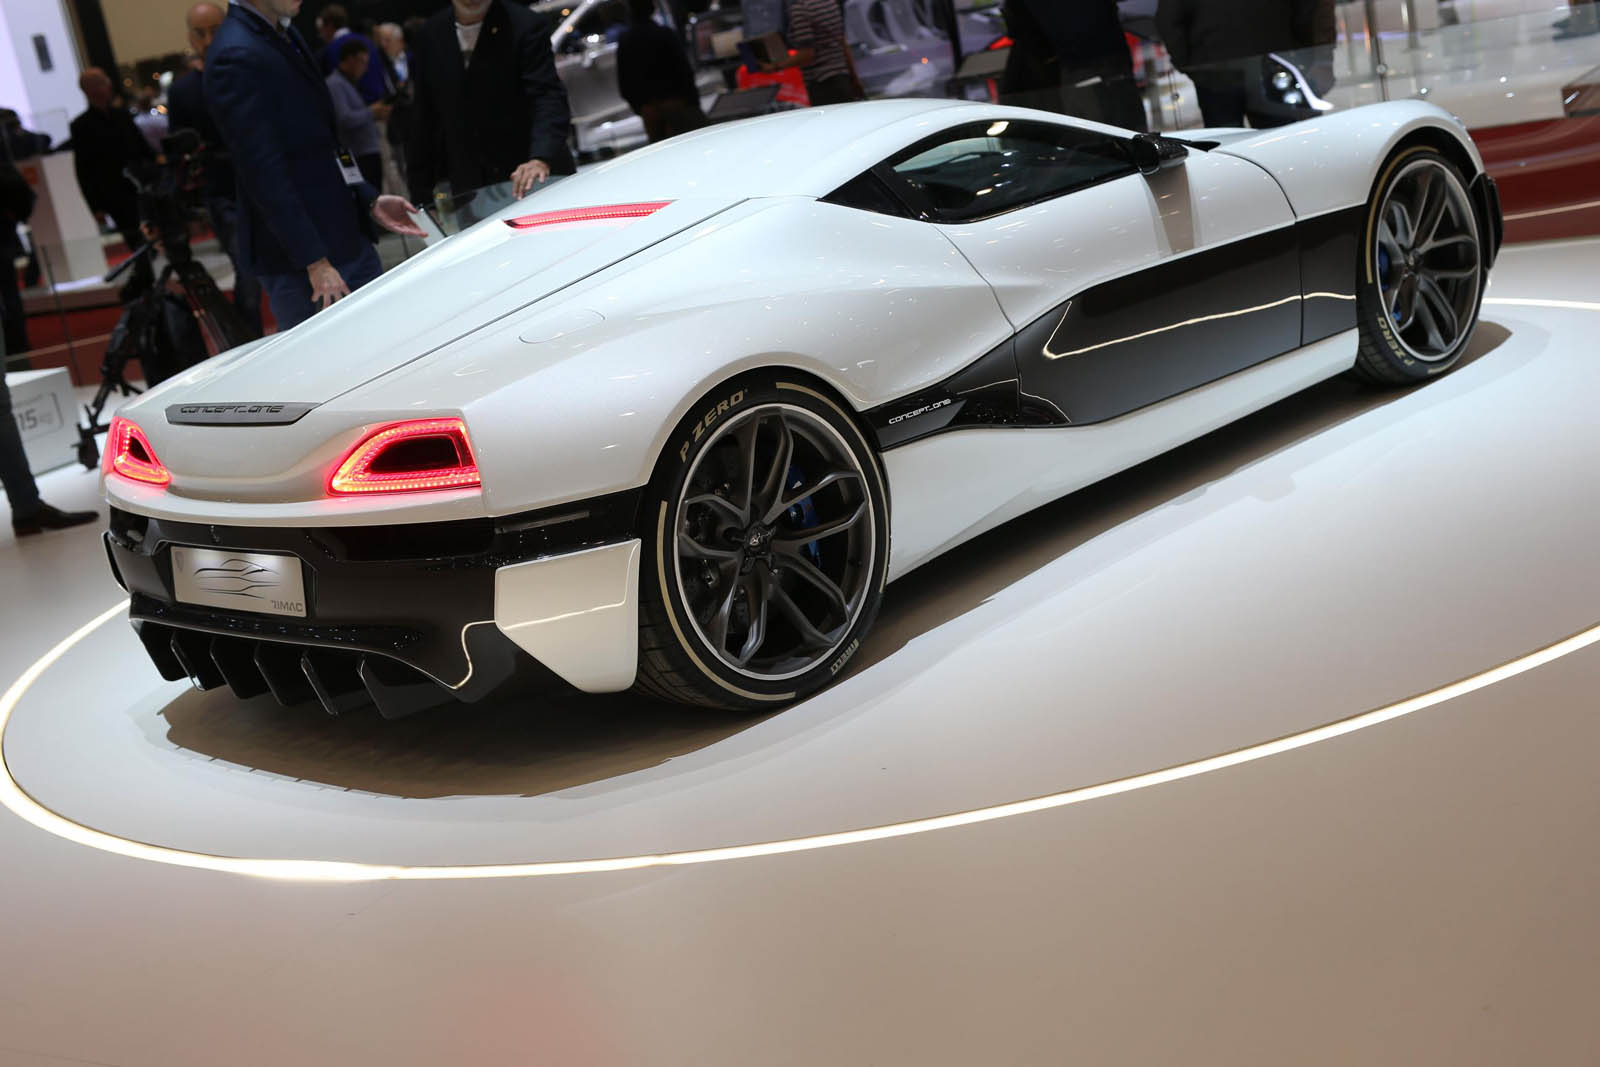 Rimac Concept_One in Geneva 2017 (4)